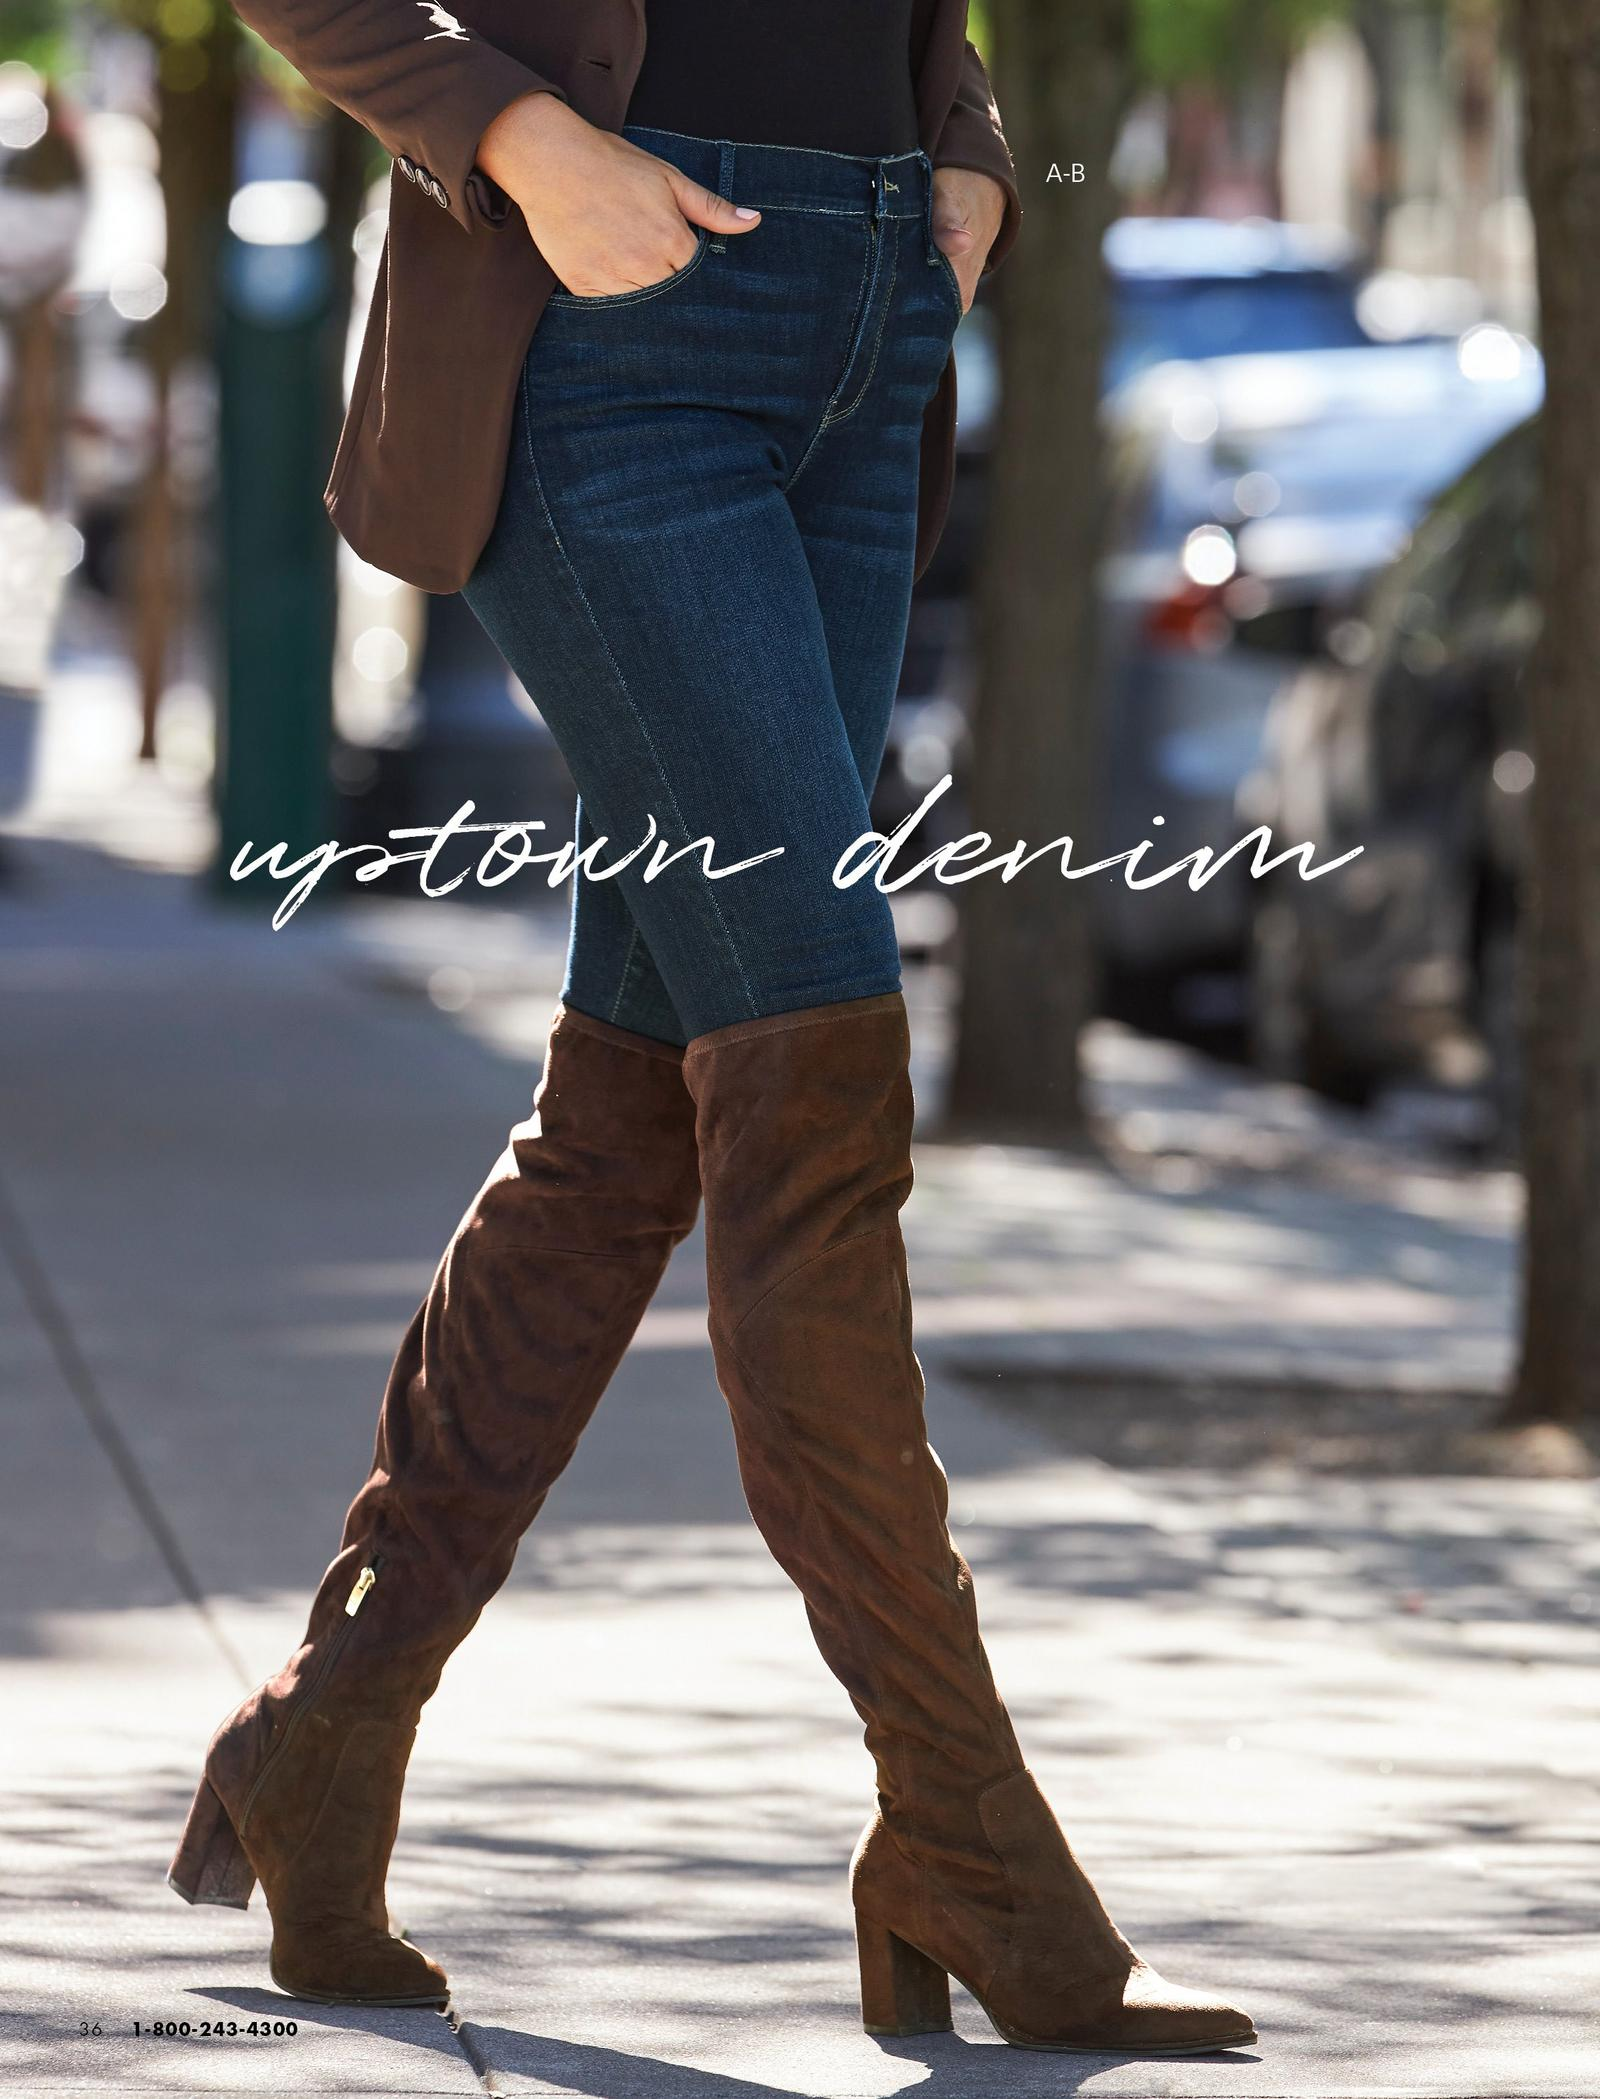 model wearing denim stirrup leggings and brown over-the-knee suede boots.